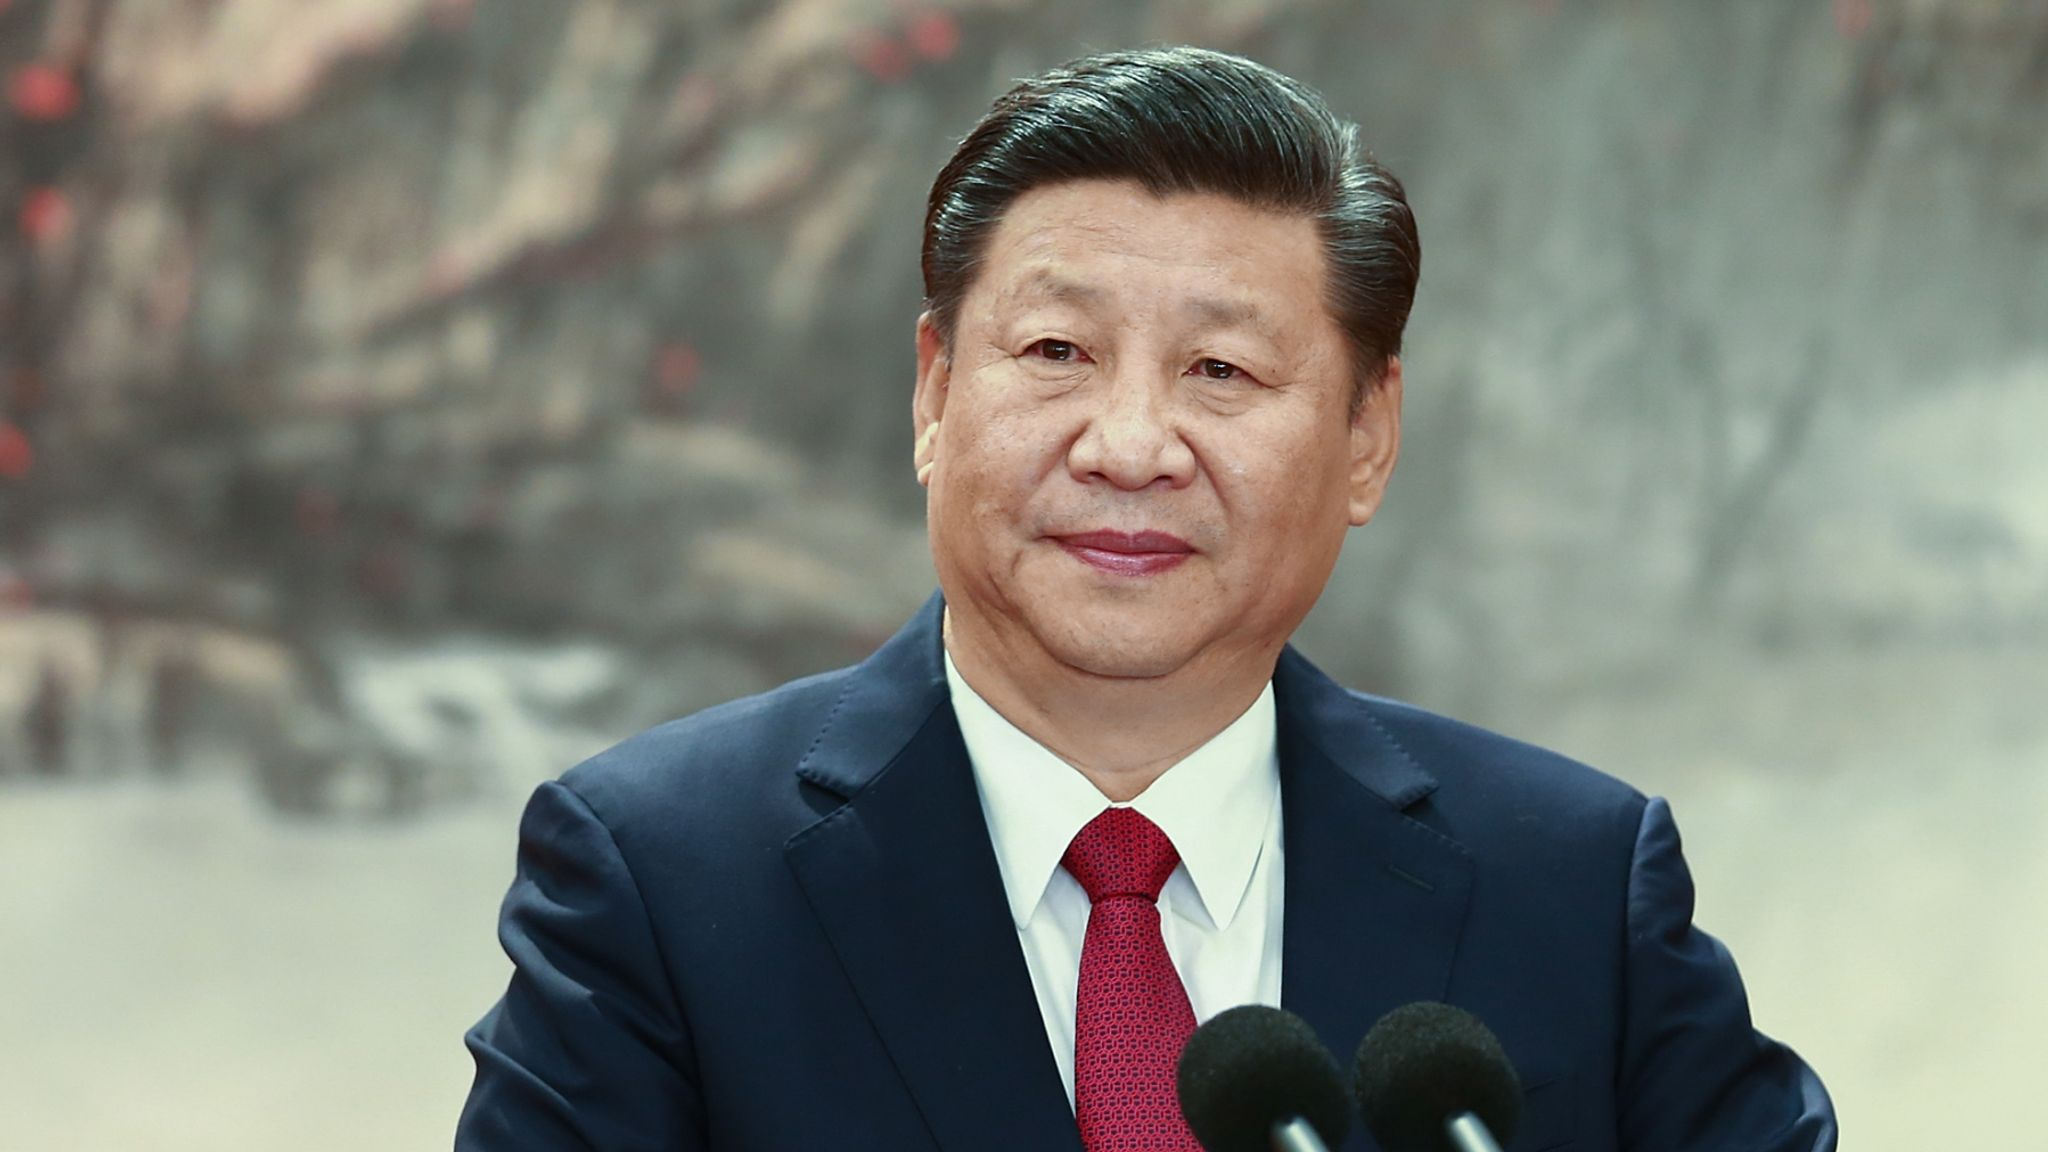 Facebook apologises for offensive translation of China President Xi Jinping's name